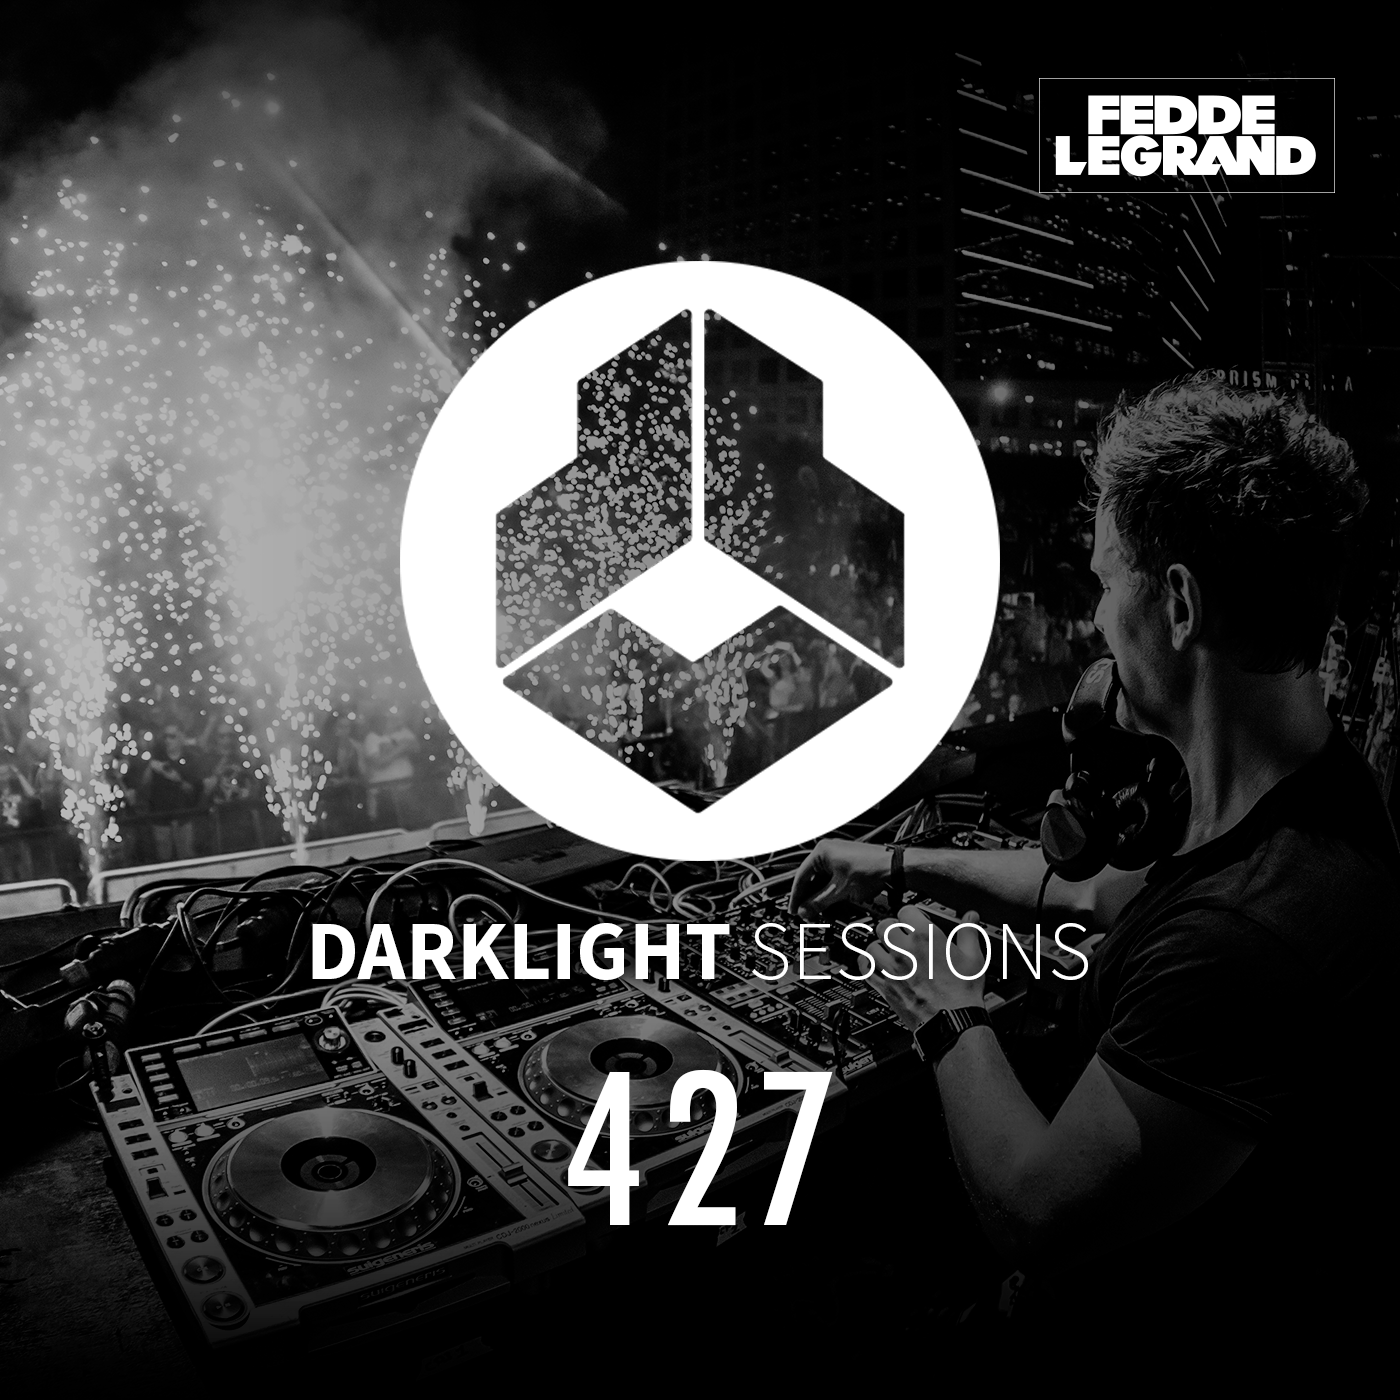 Darklight Sessions 427